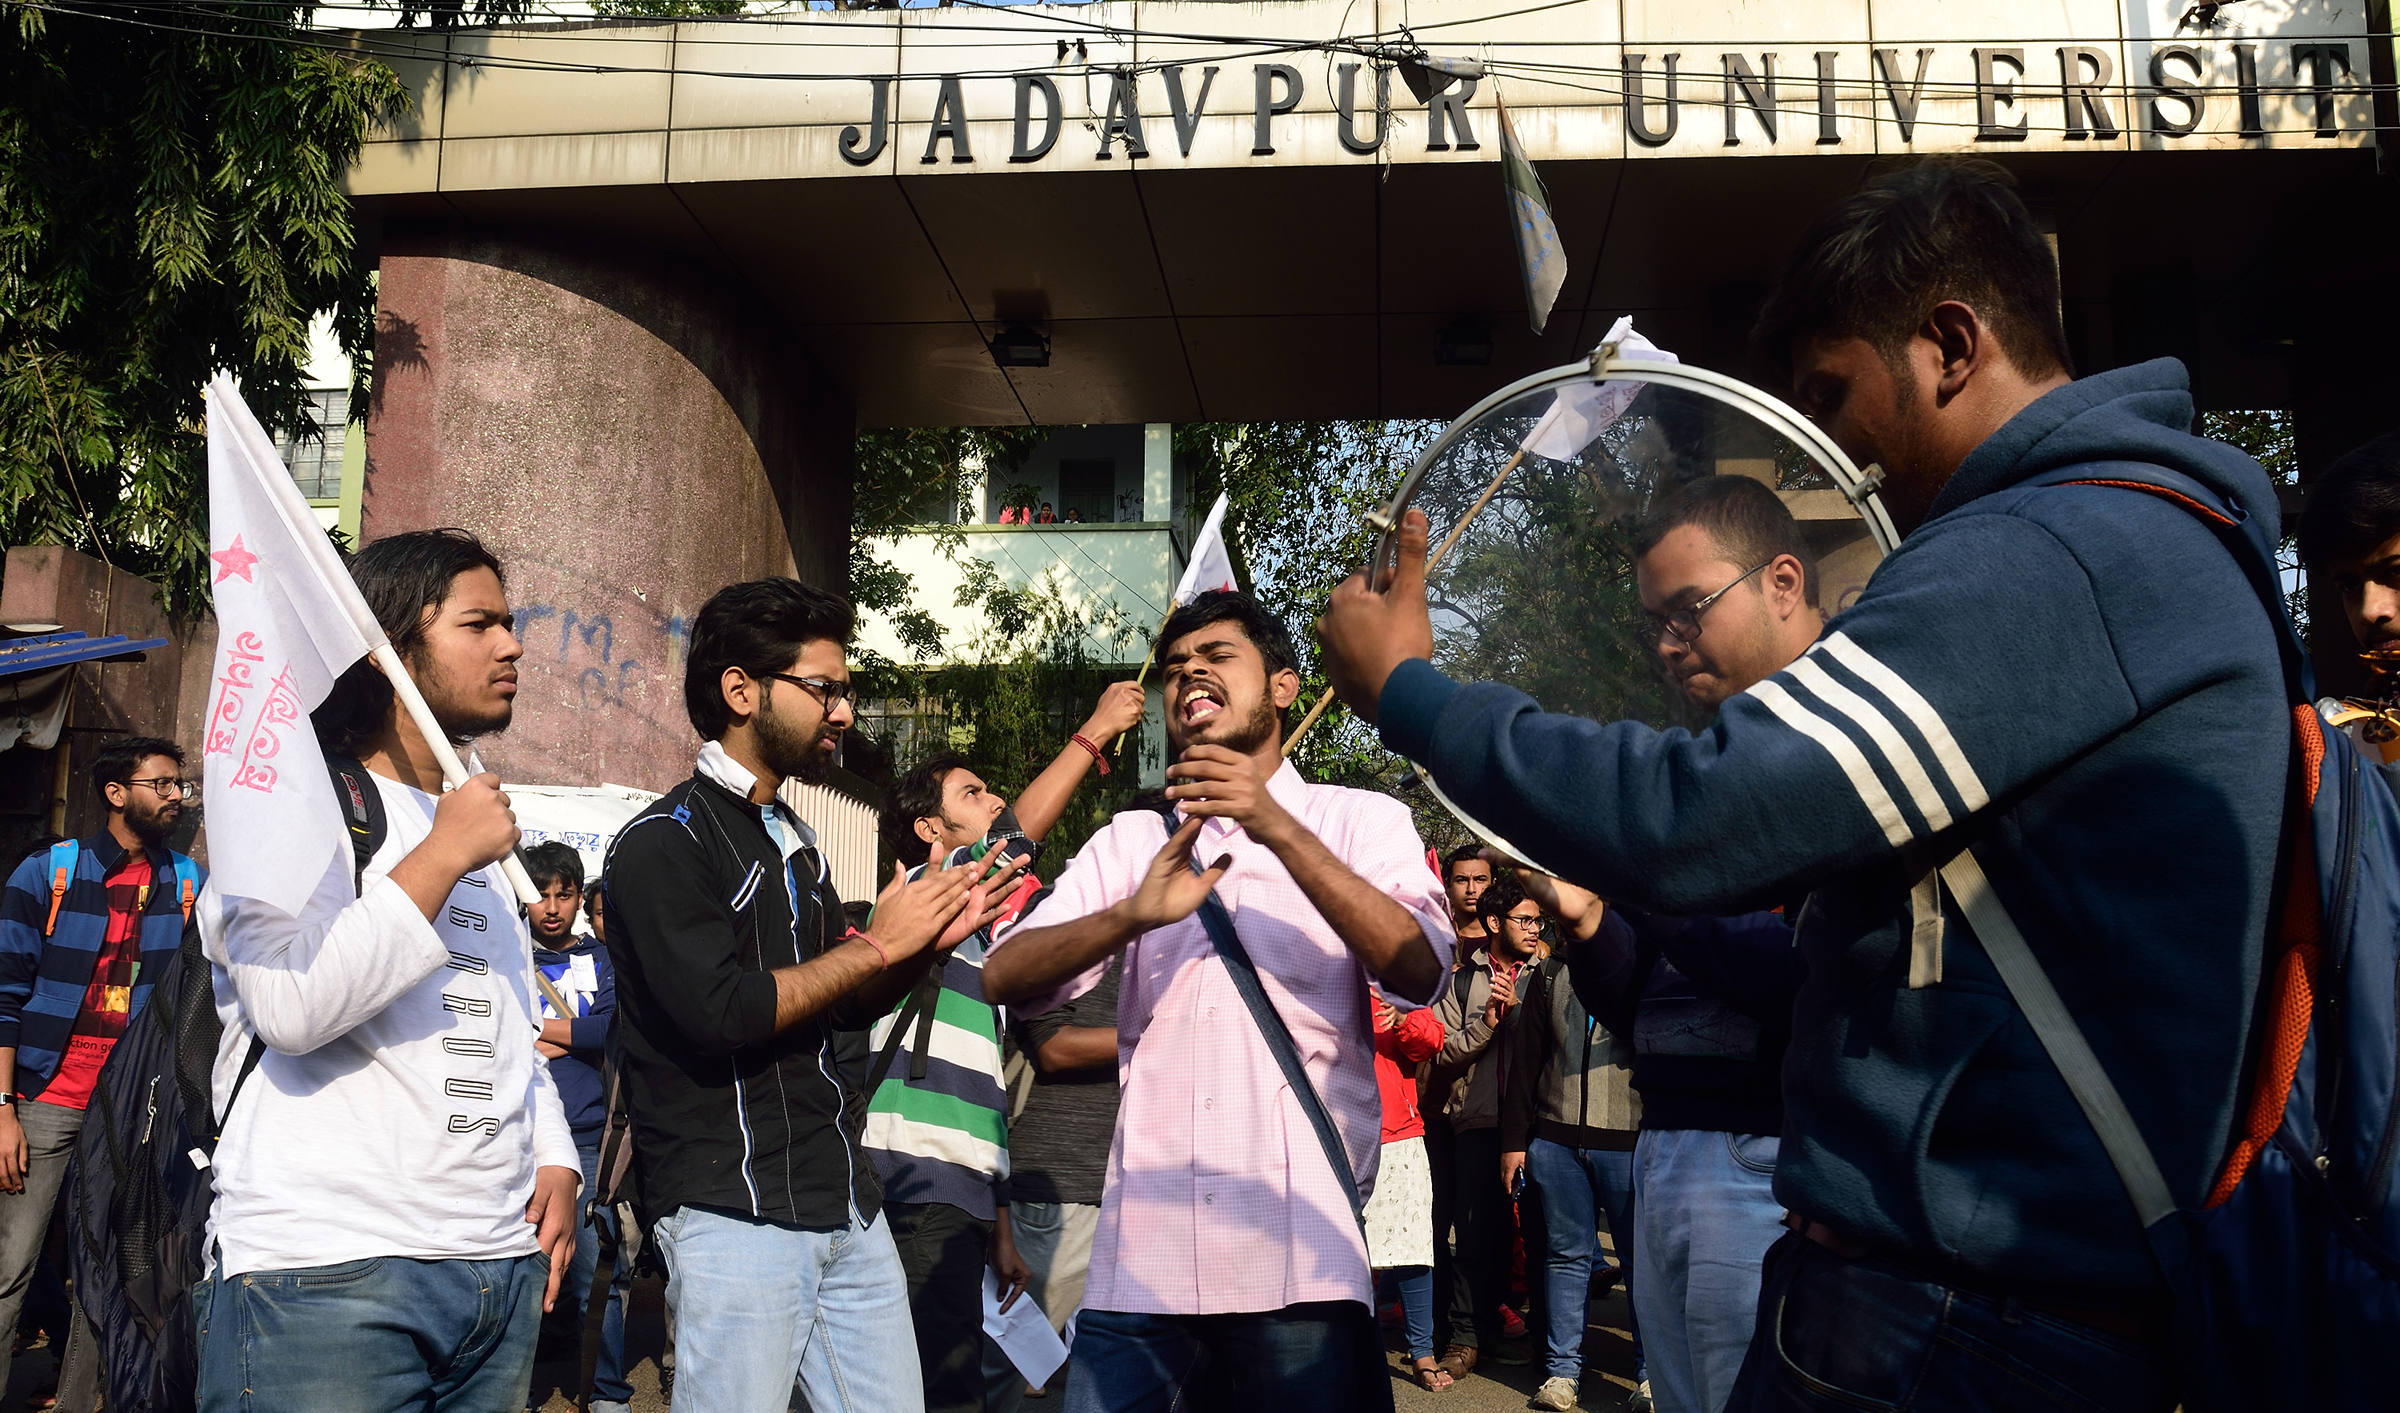 Students shout slogans during protests against the attack on the students of Jawaharlal Nehru University (JNU) in New Delhi on Jan. 6, 2020.